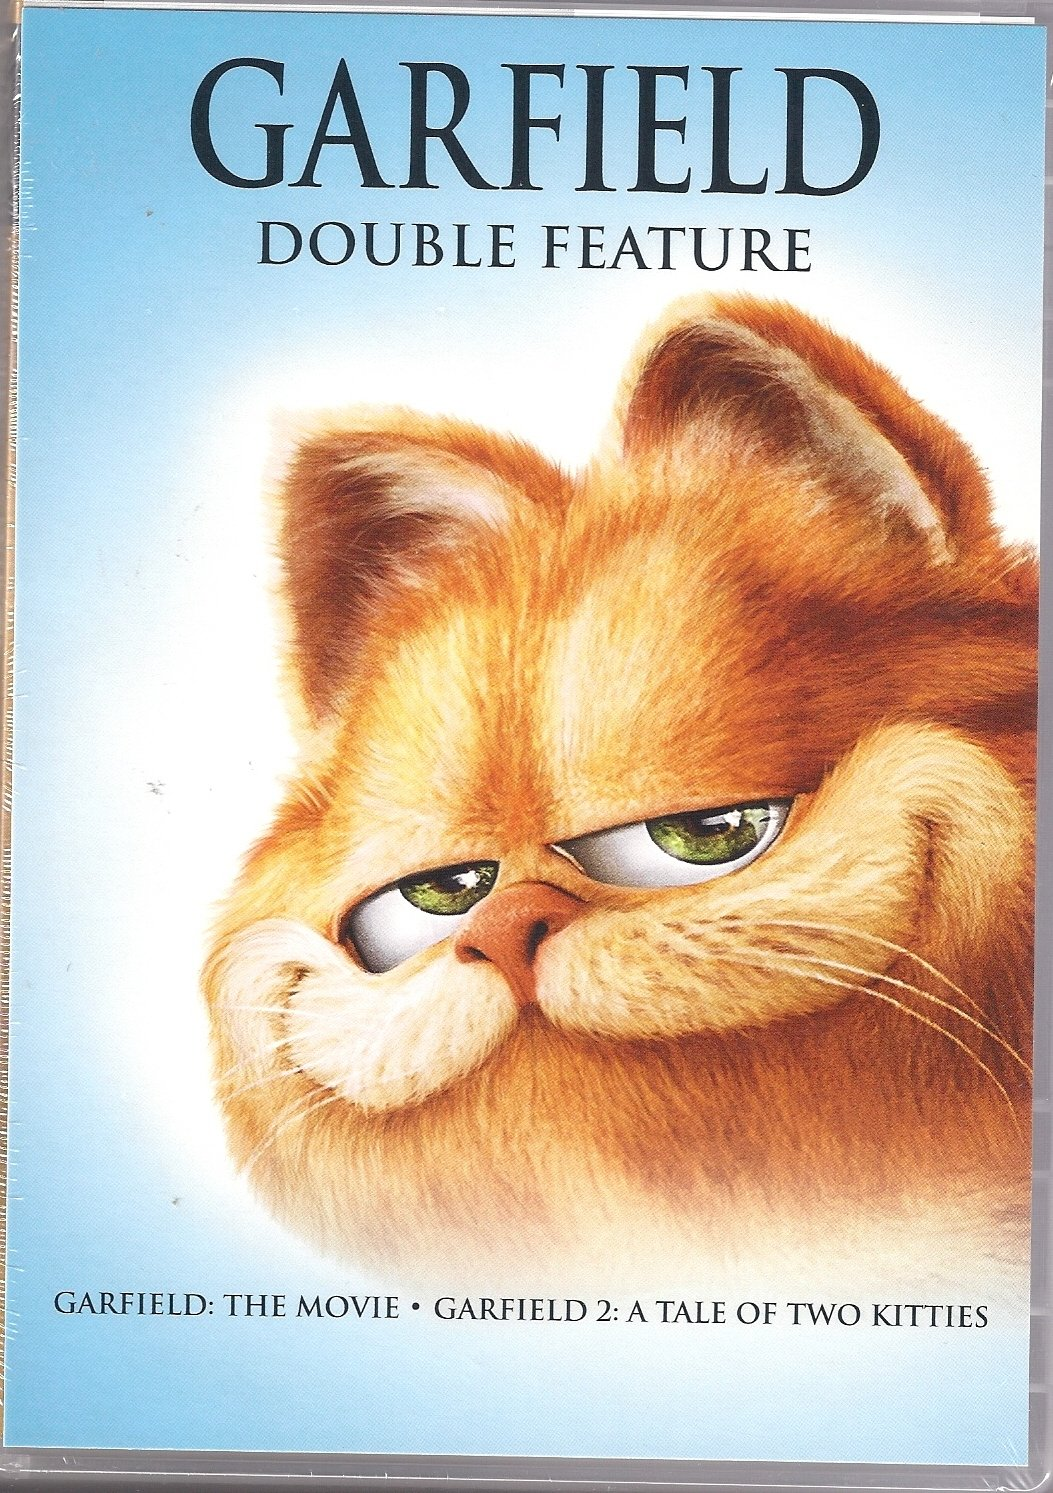 Amazon Com Garfield Double Feature Garfield The Movie Garfield 2 A Tale Of Two Kitties Movies Tv